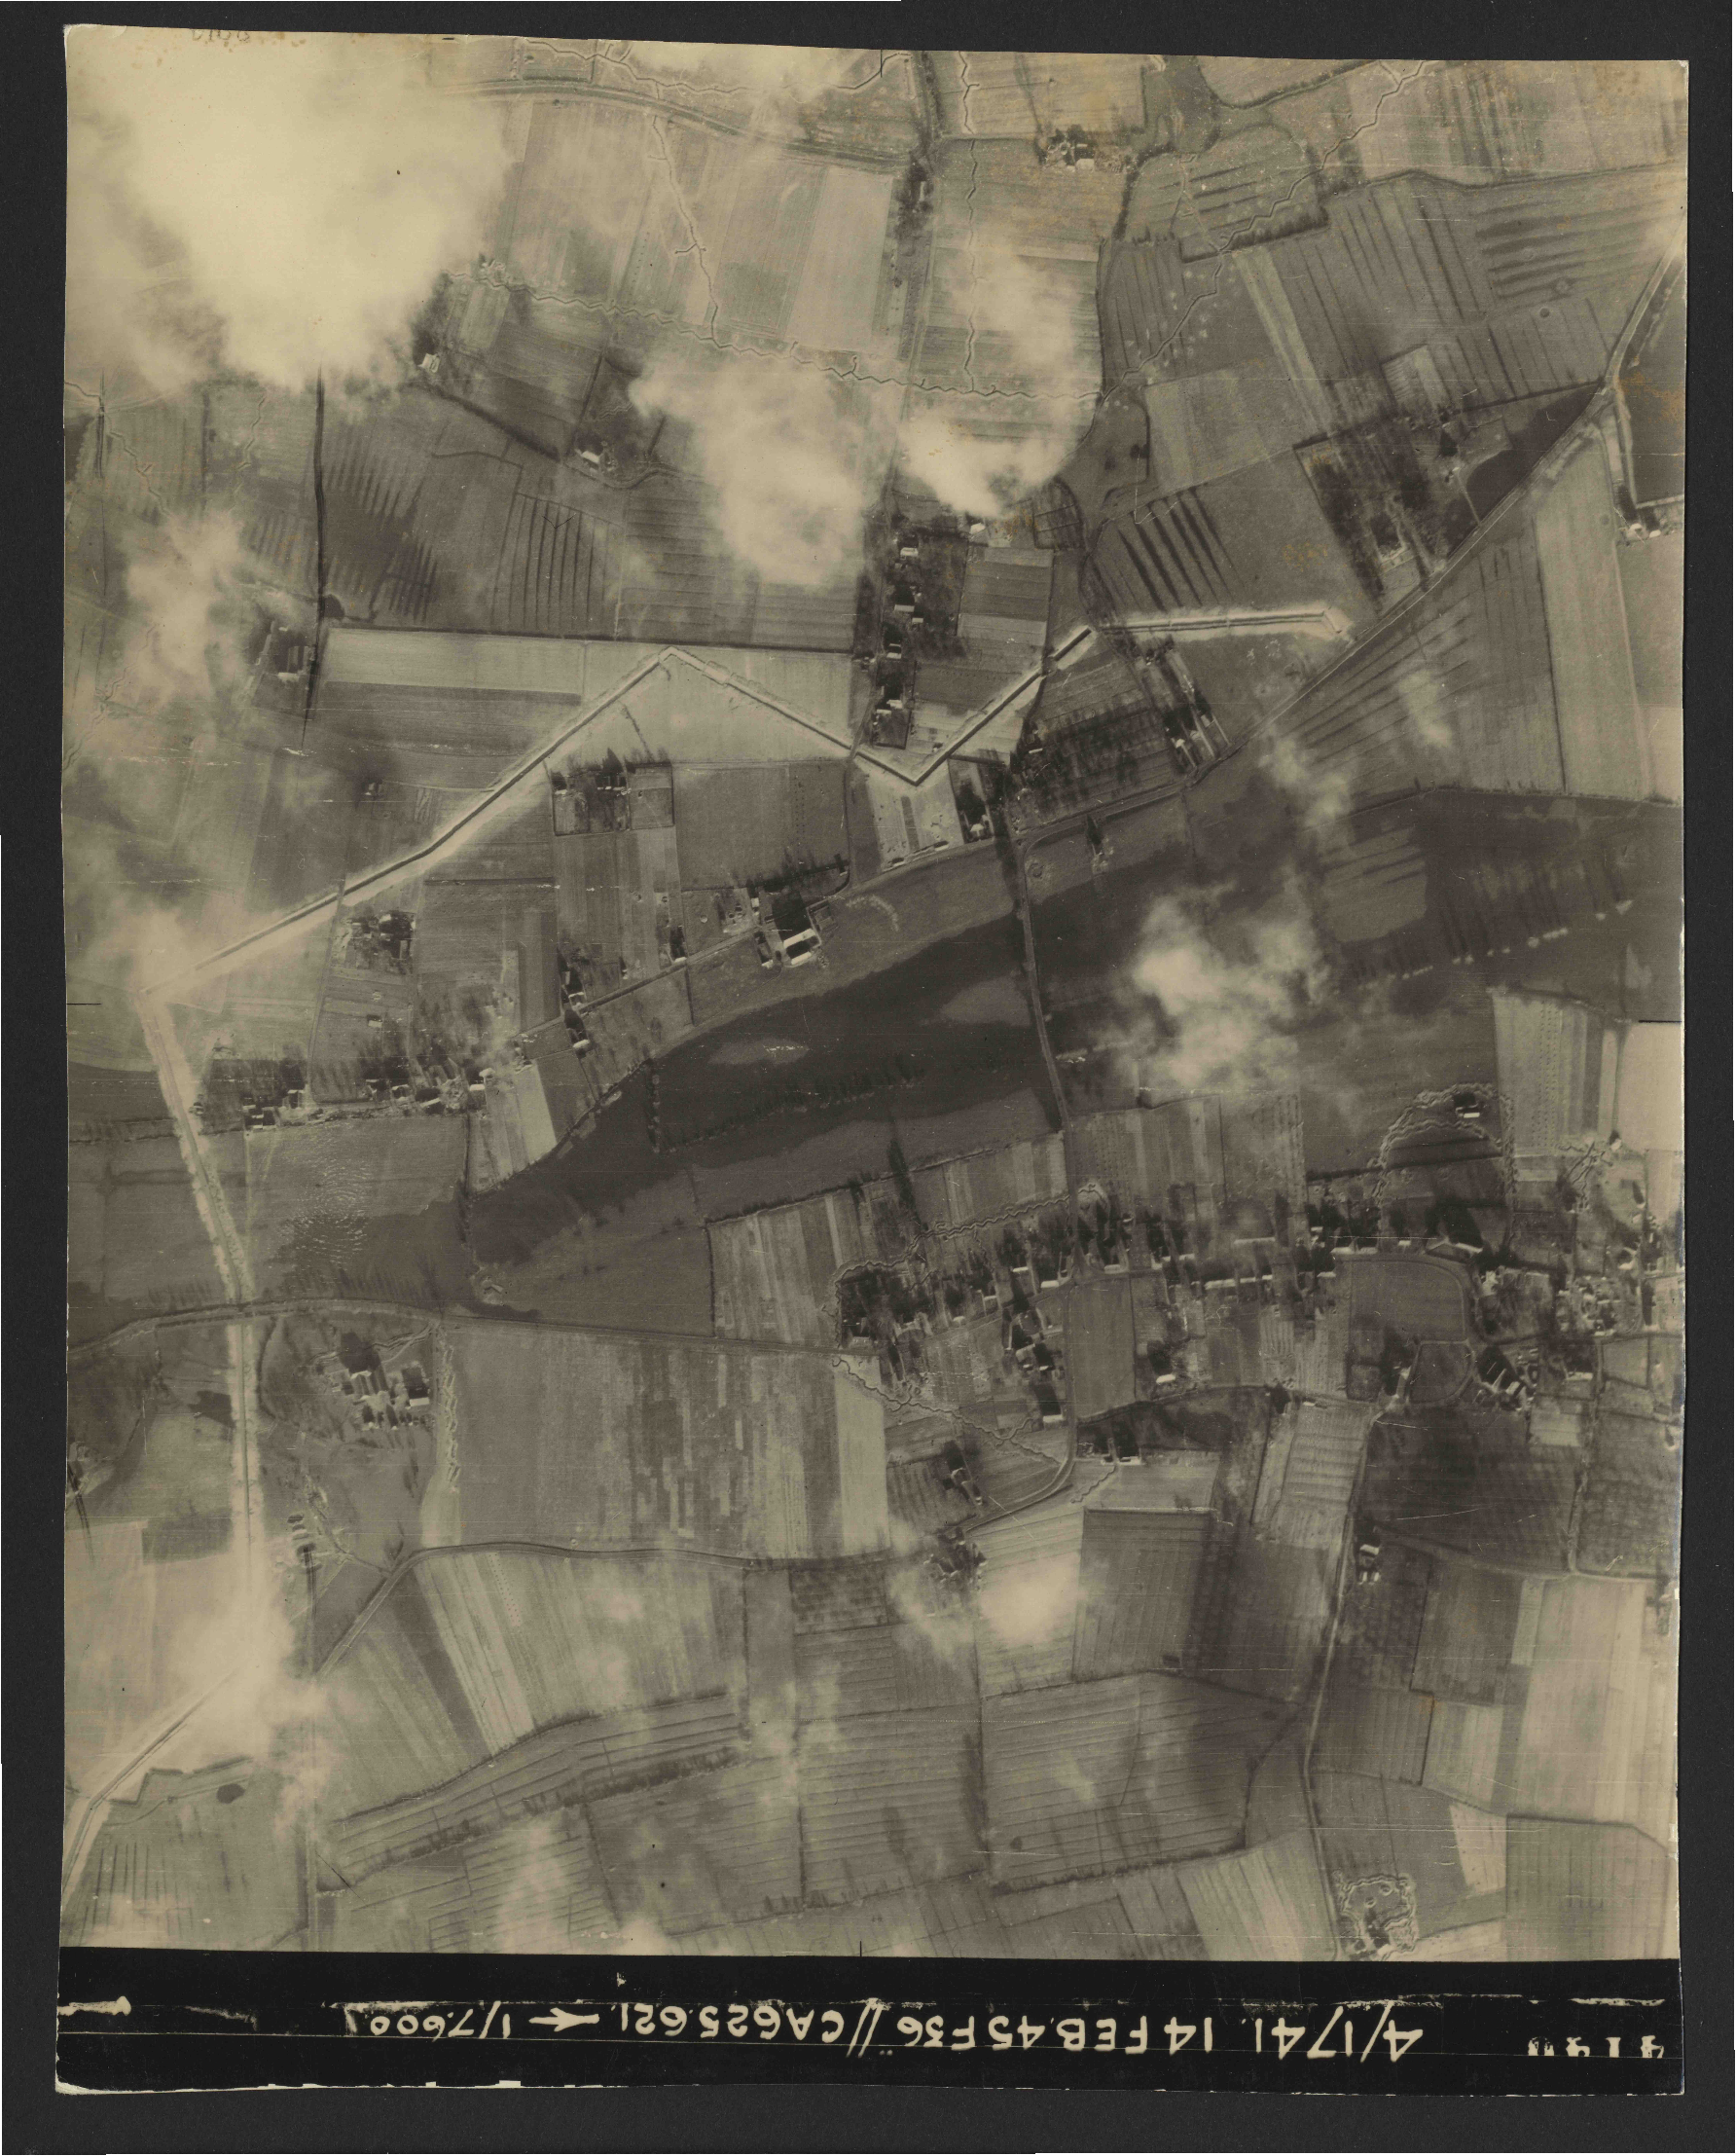 Collection RAF aerial photos 1940-1945 - flight 132, run 03, photo 4146